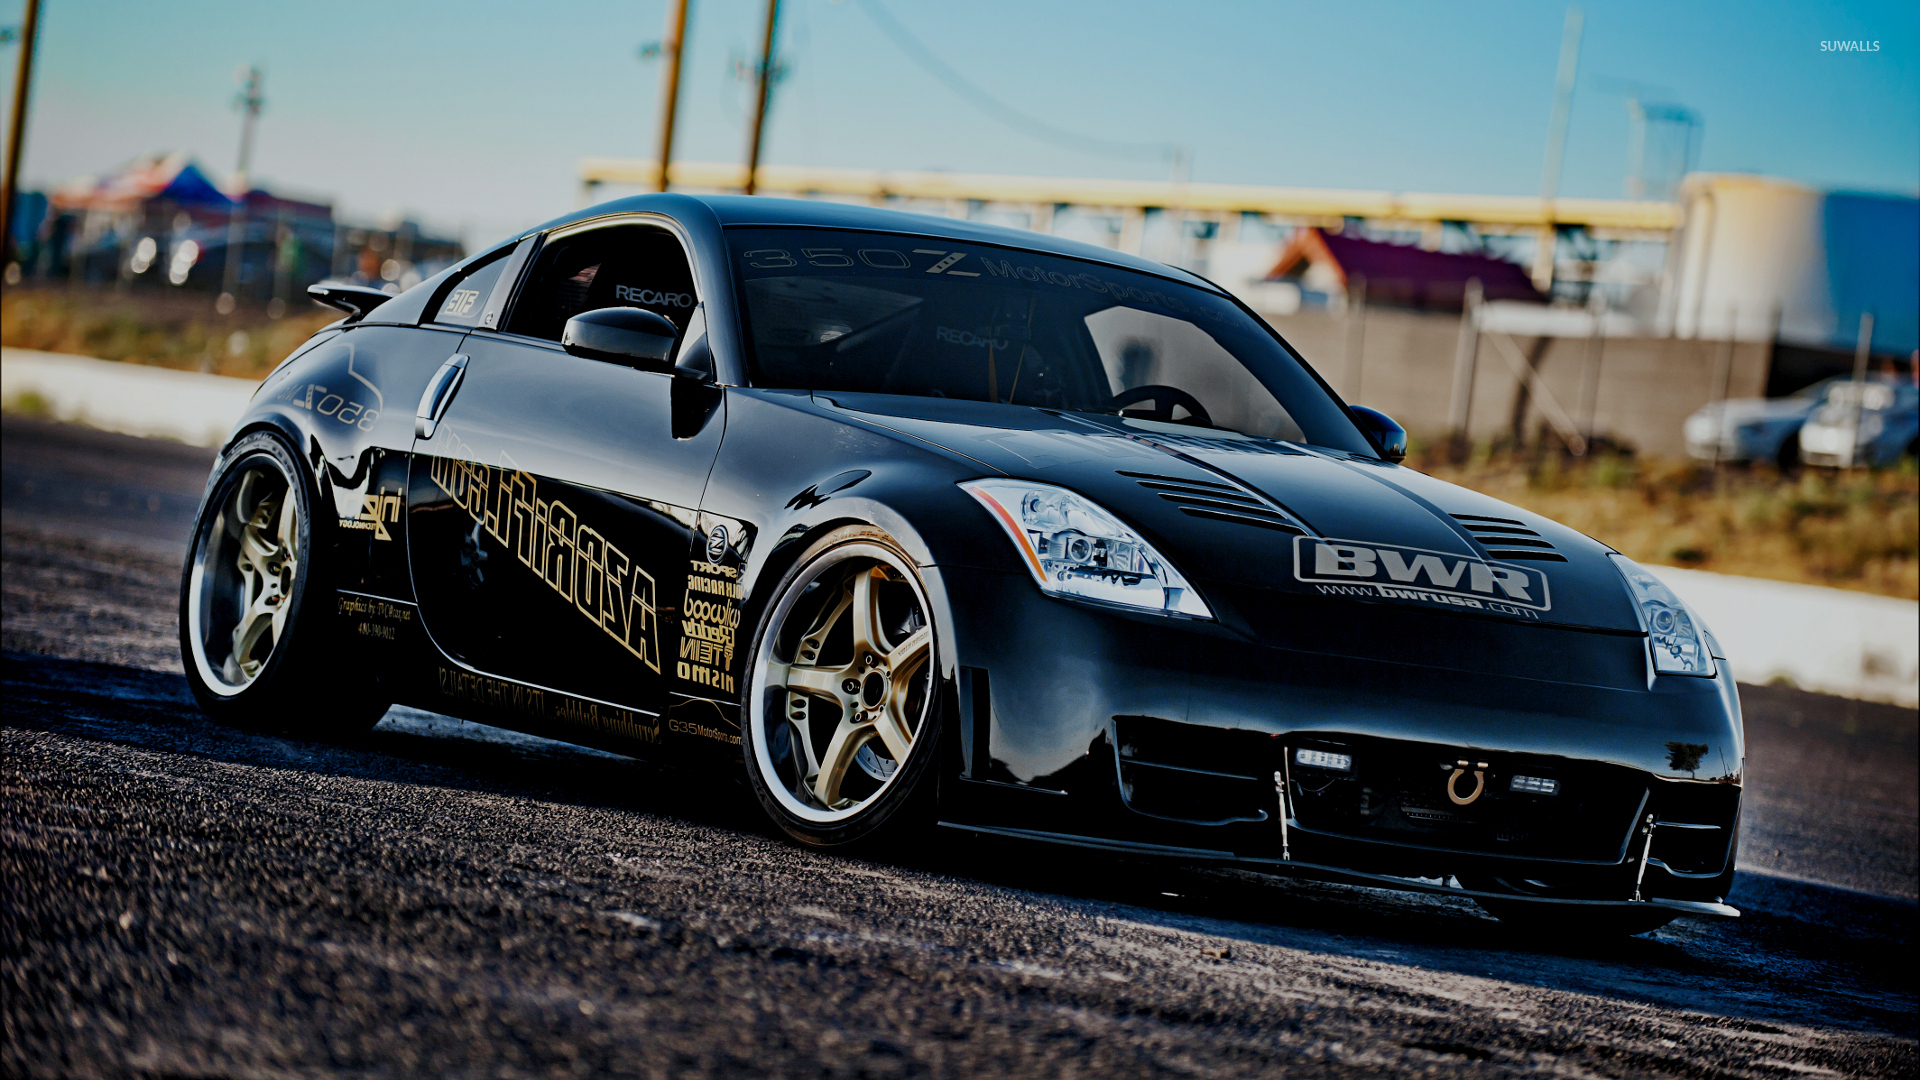 1920x1080 - Nissan 350Z Wallpapers 22